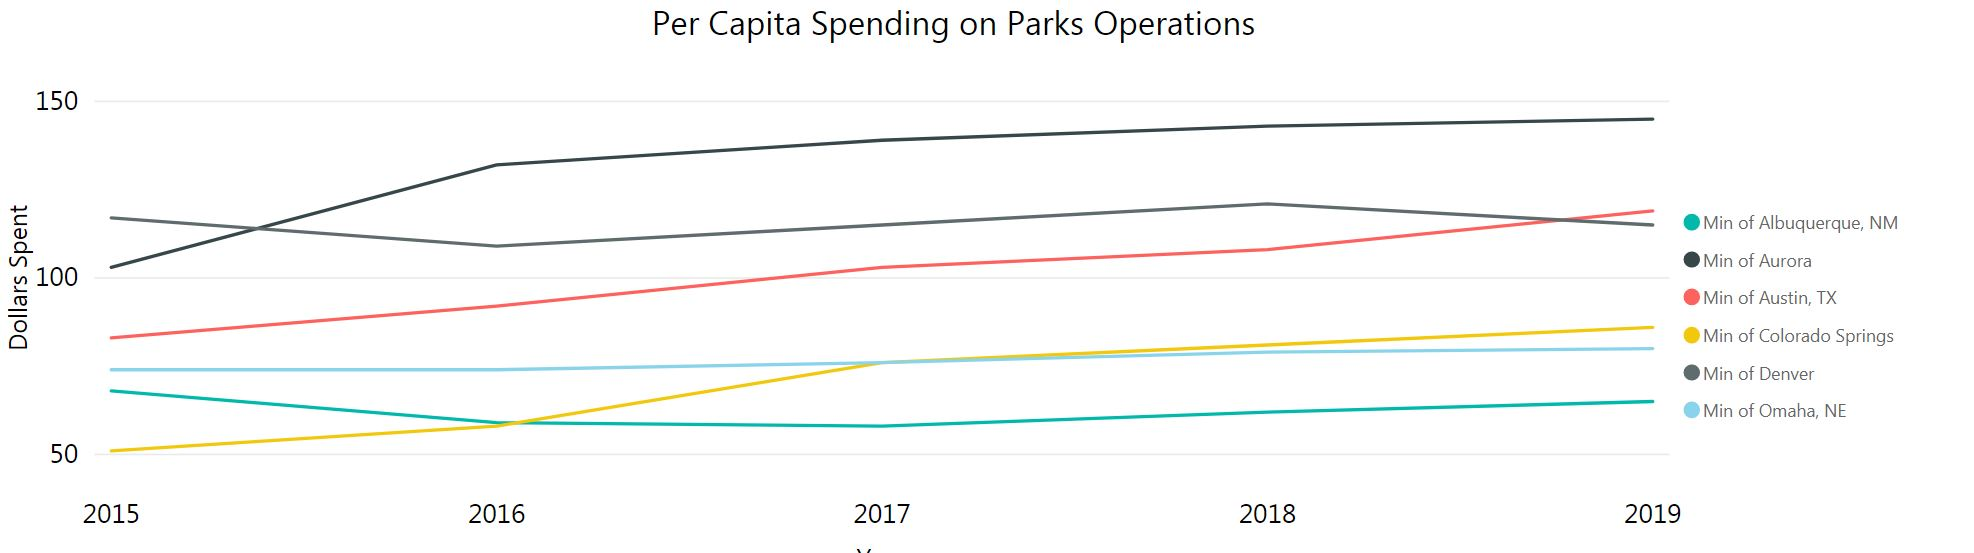 graph of parks spending per capita. Colorado Springs increasing from 2015 to 2019.